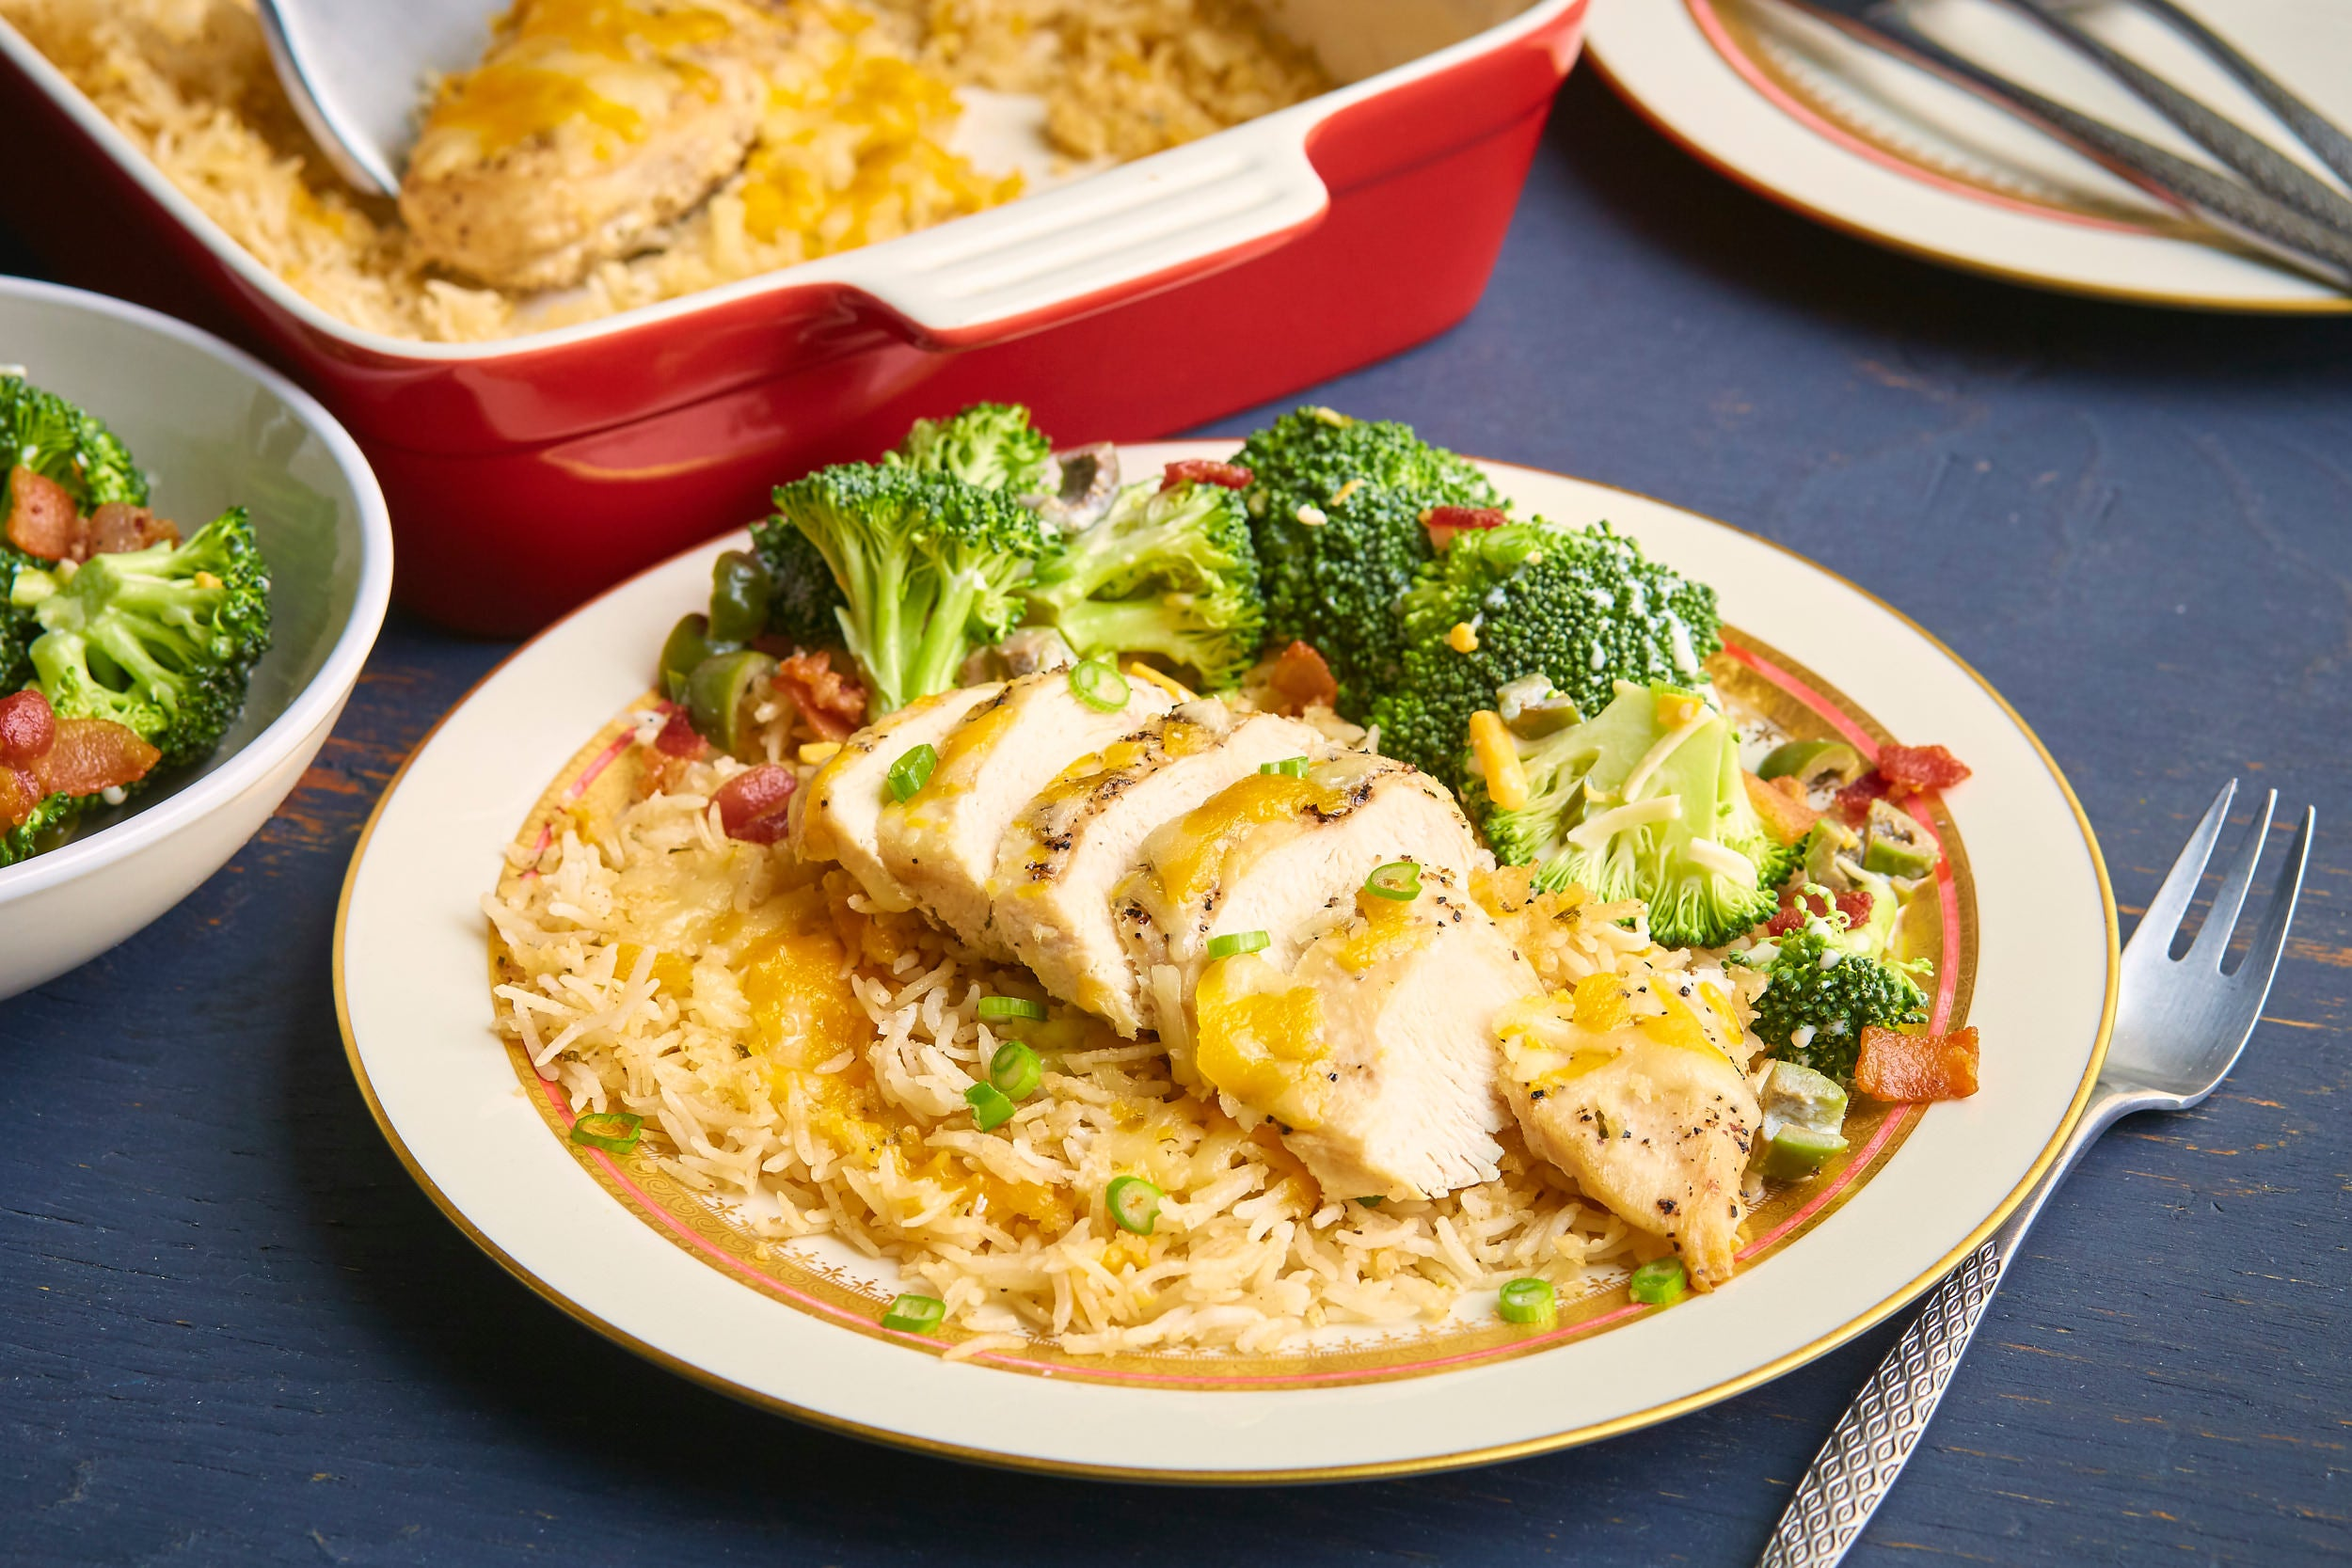 Baked Chicken and Creamy Rice Casserole